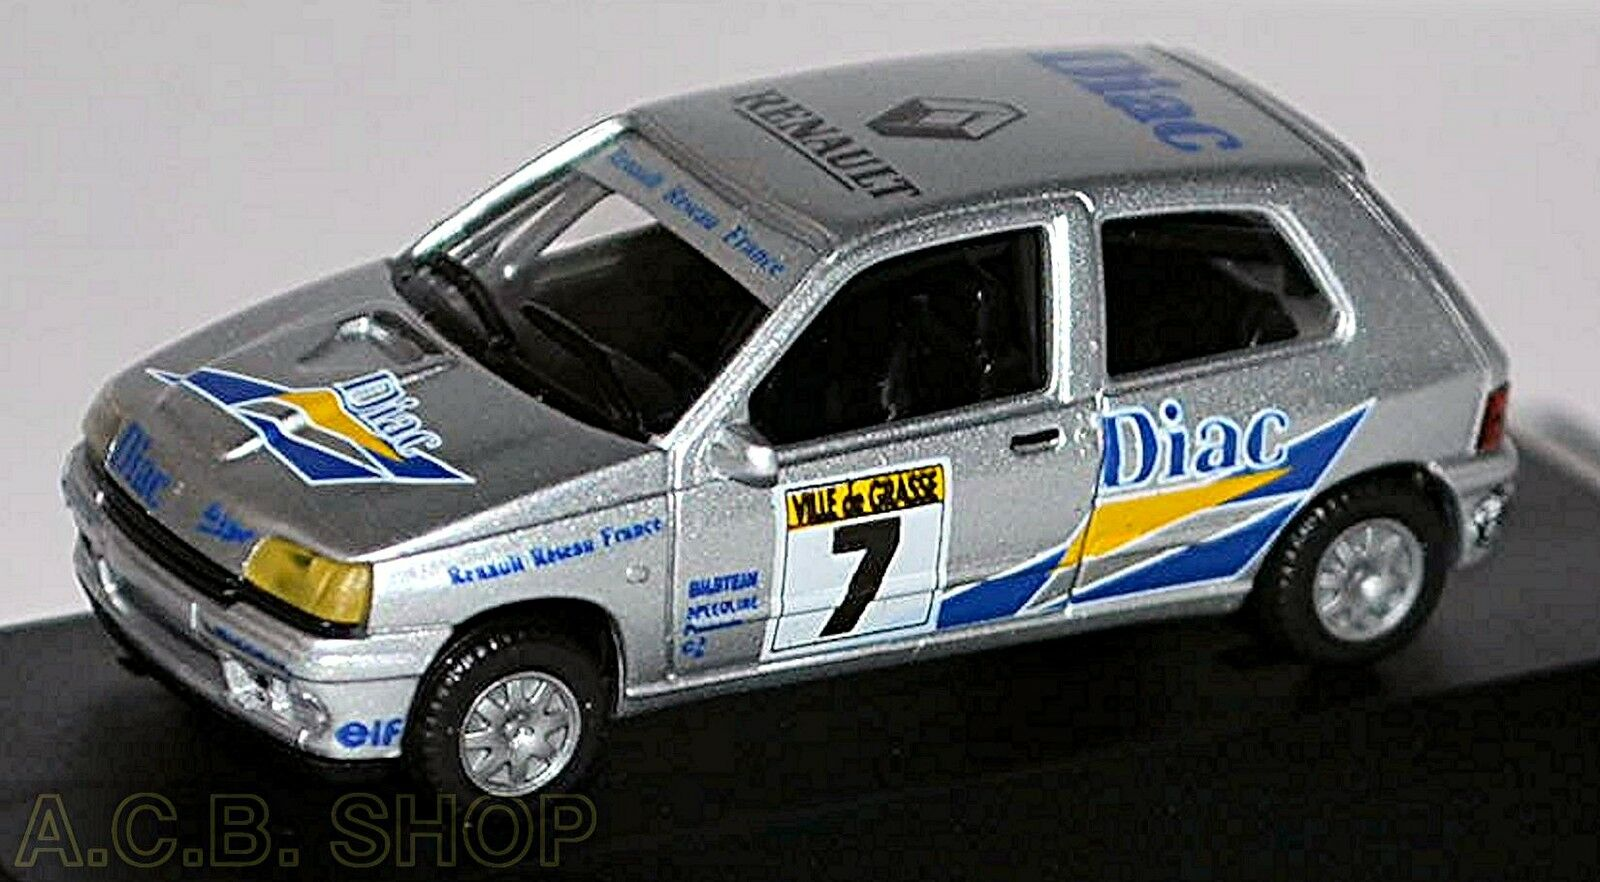 Renault Clio 16V Reseau France 93 Diac  87 Herpa PC-Box